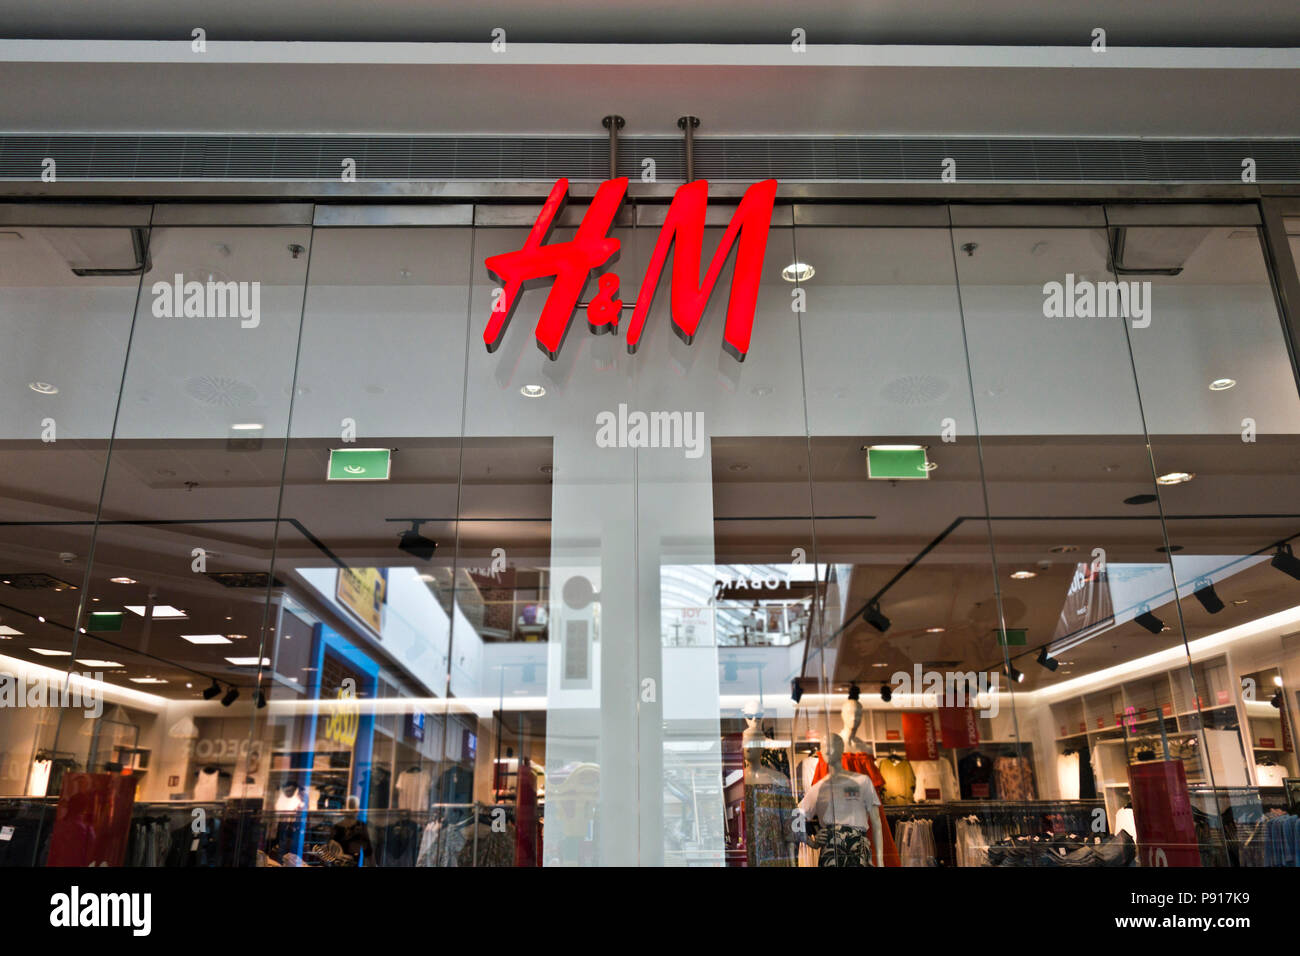 H&M store entrance with logo - Stock Image